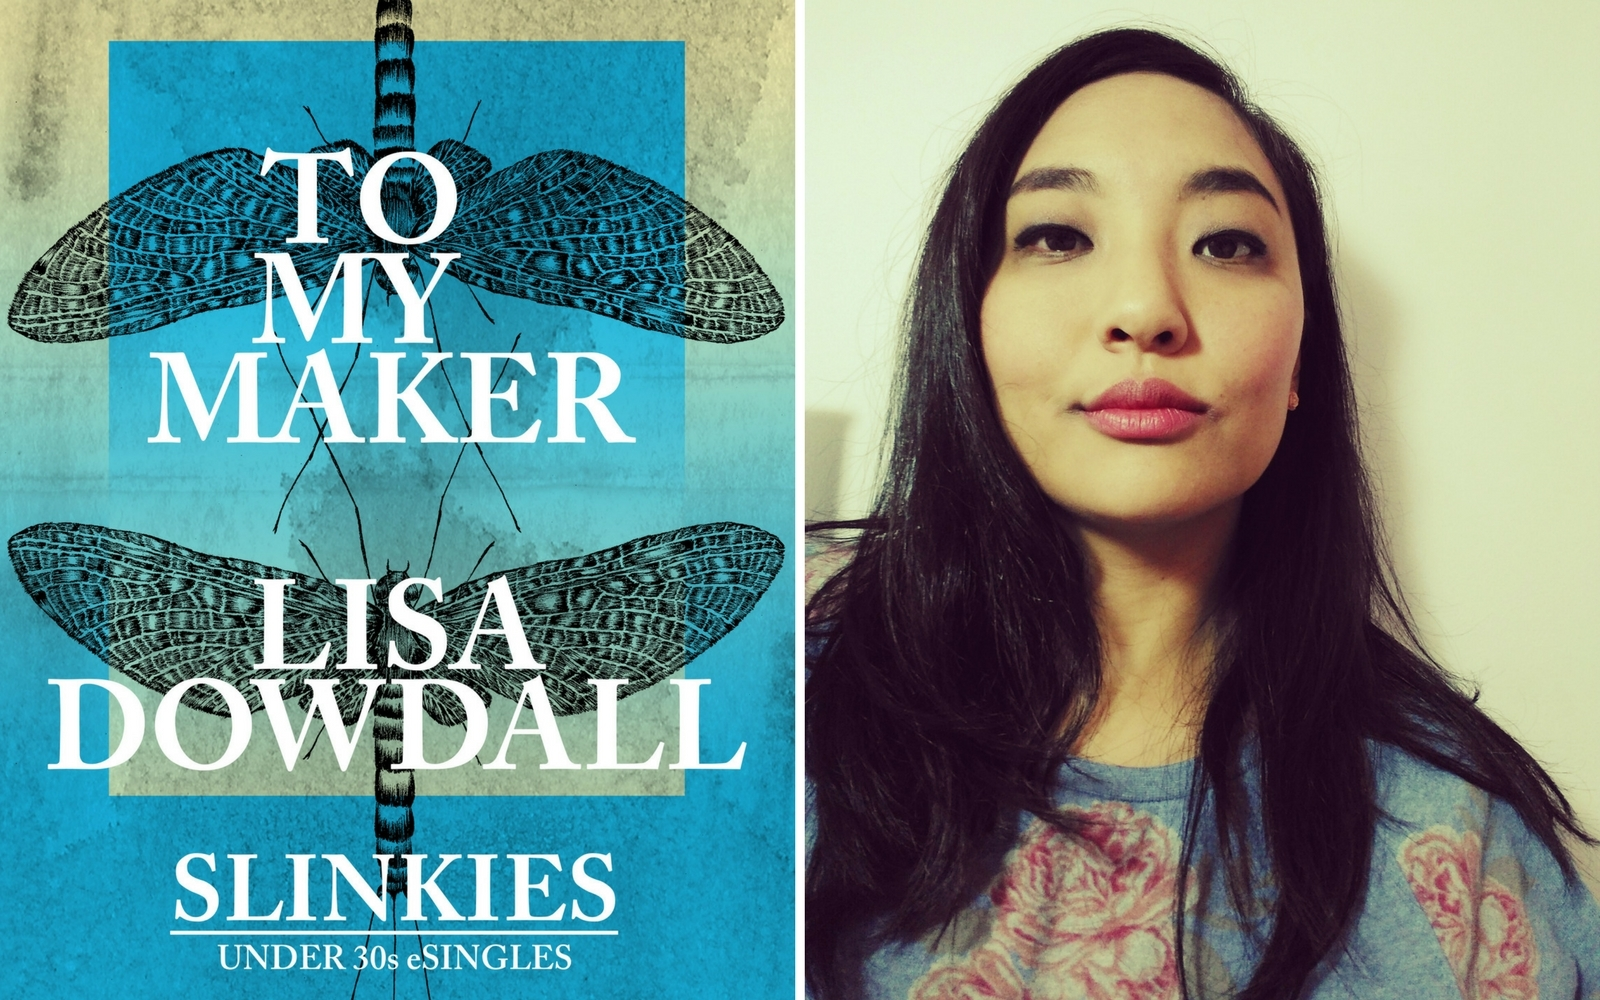 To My Maker: Lisa Dowdall